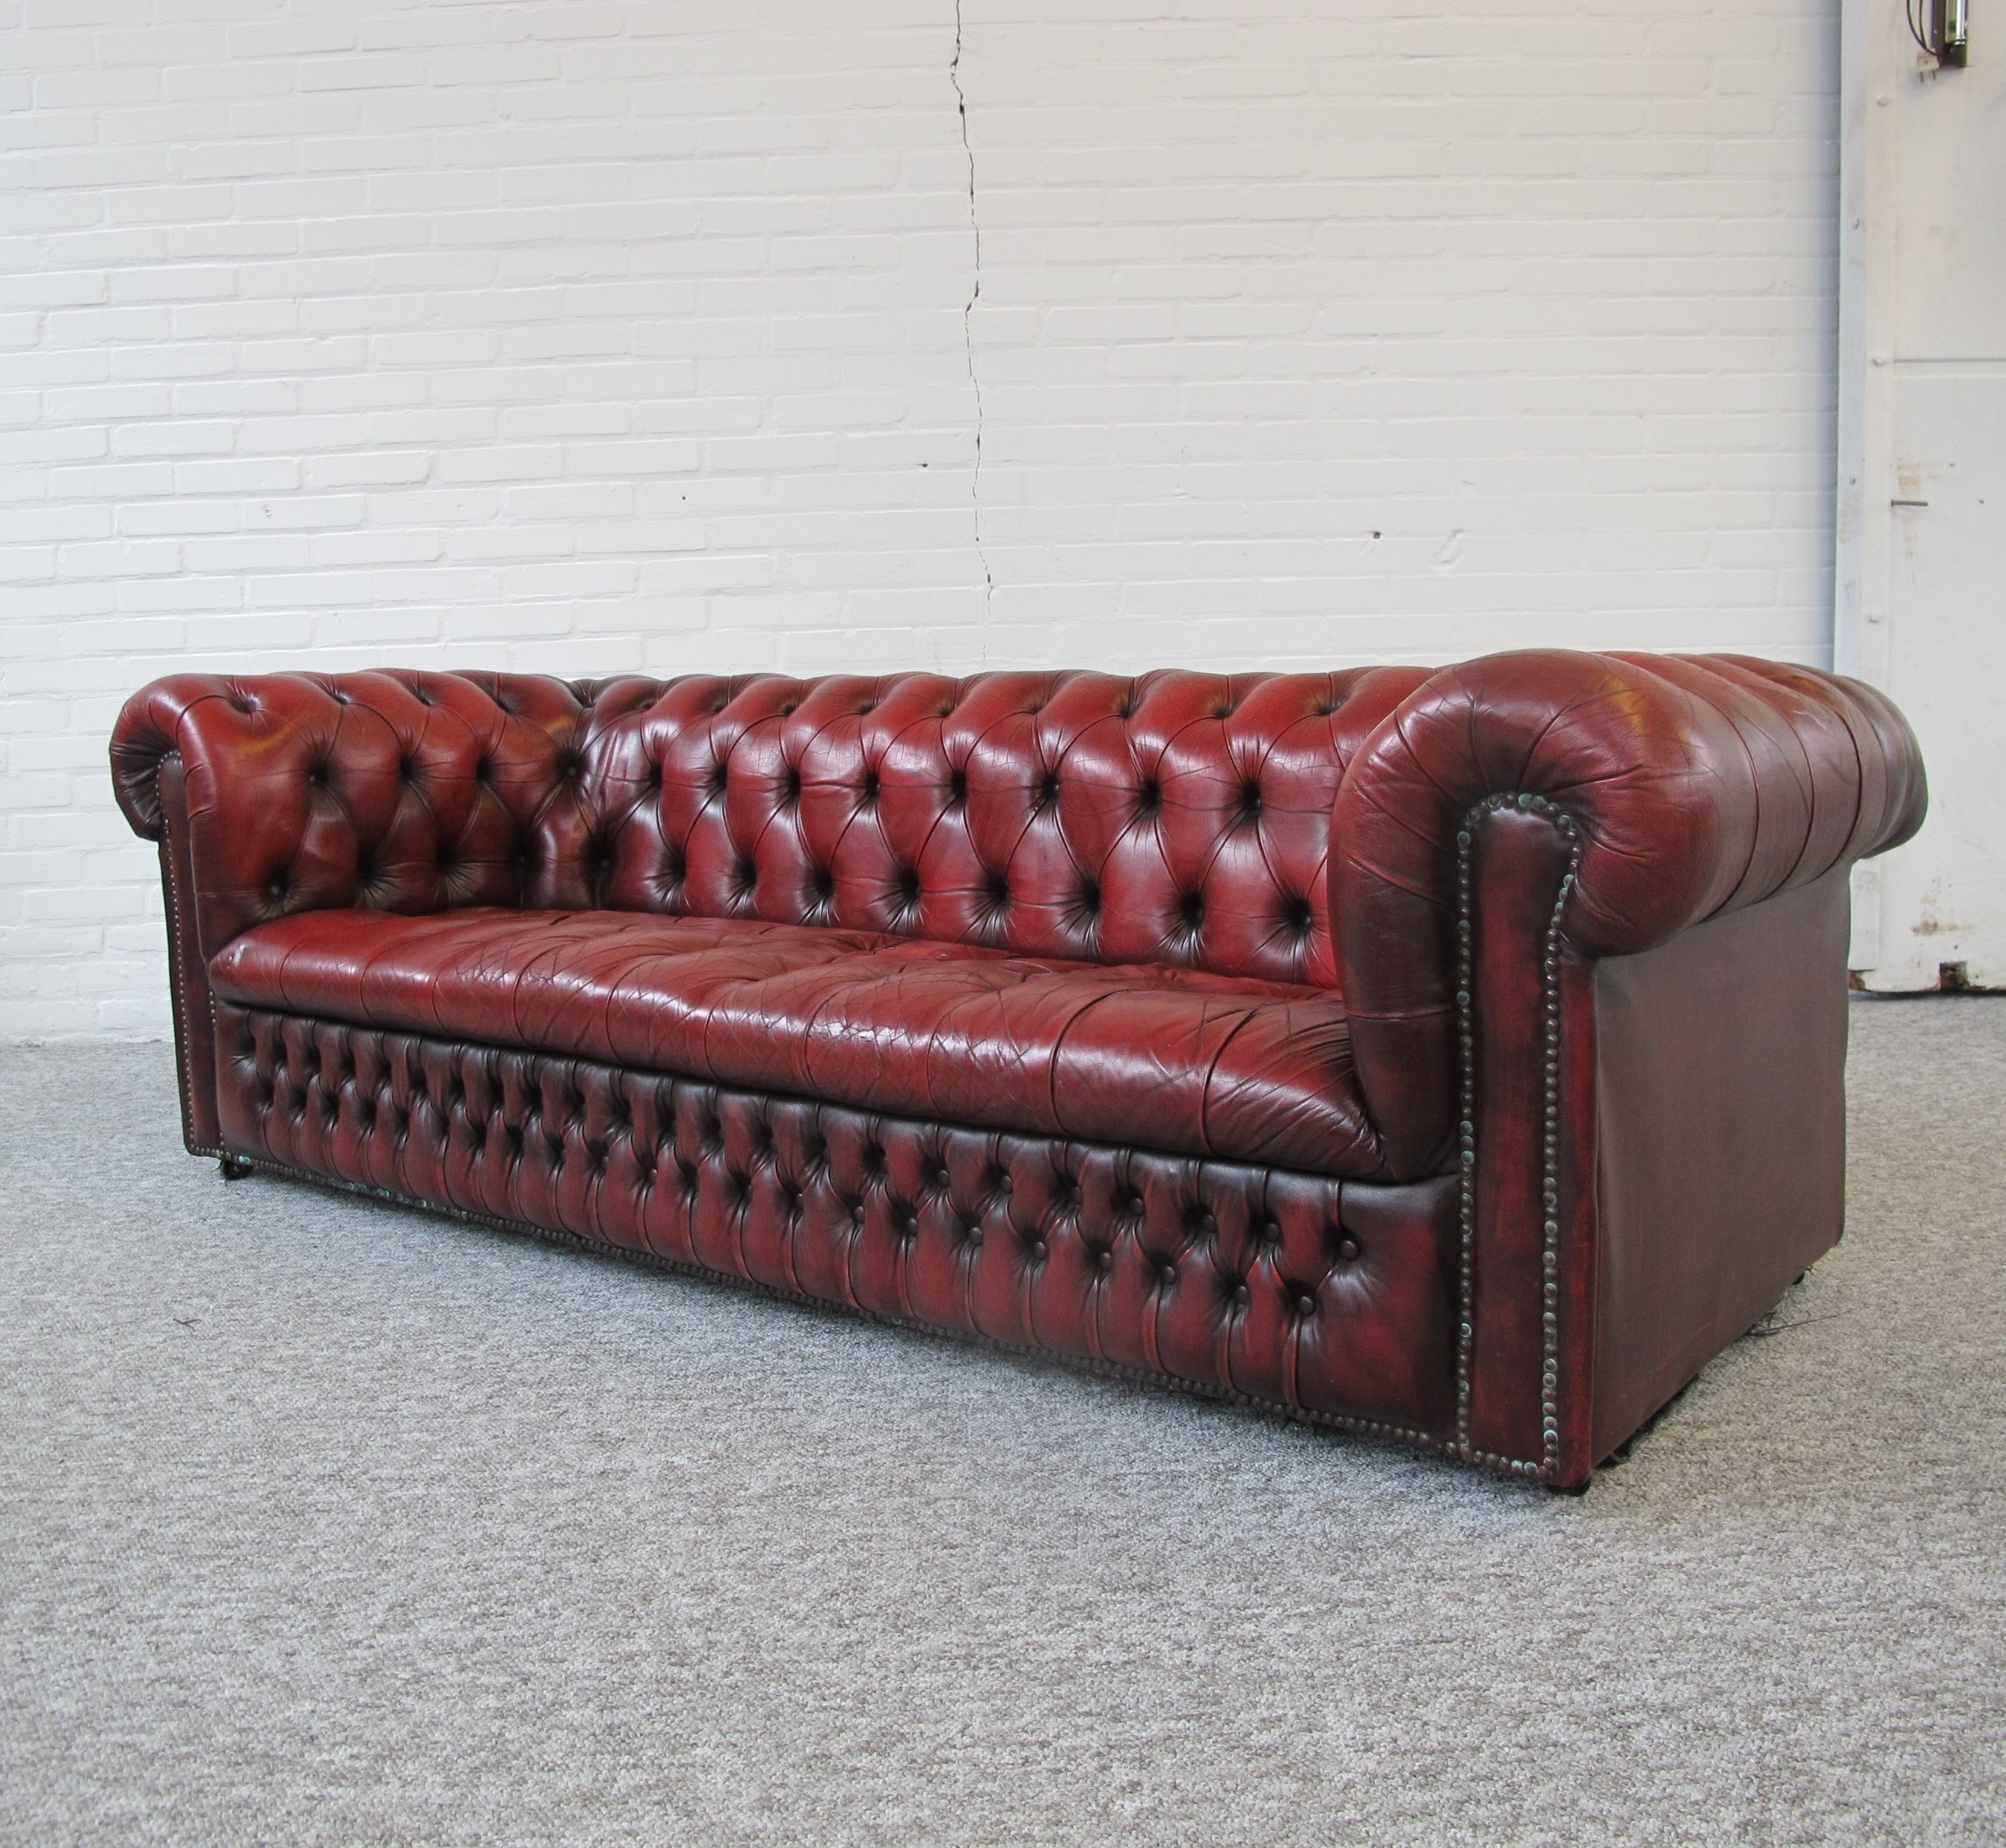 Beau Oxblood Red Chesterfield Sofa